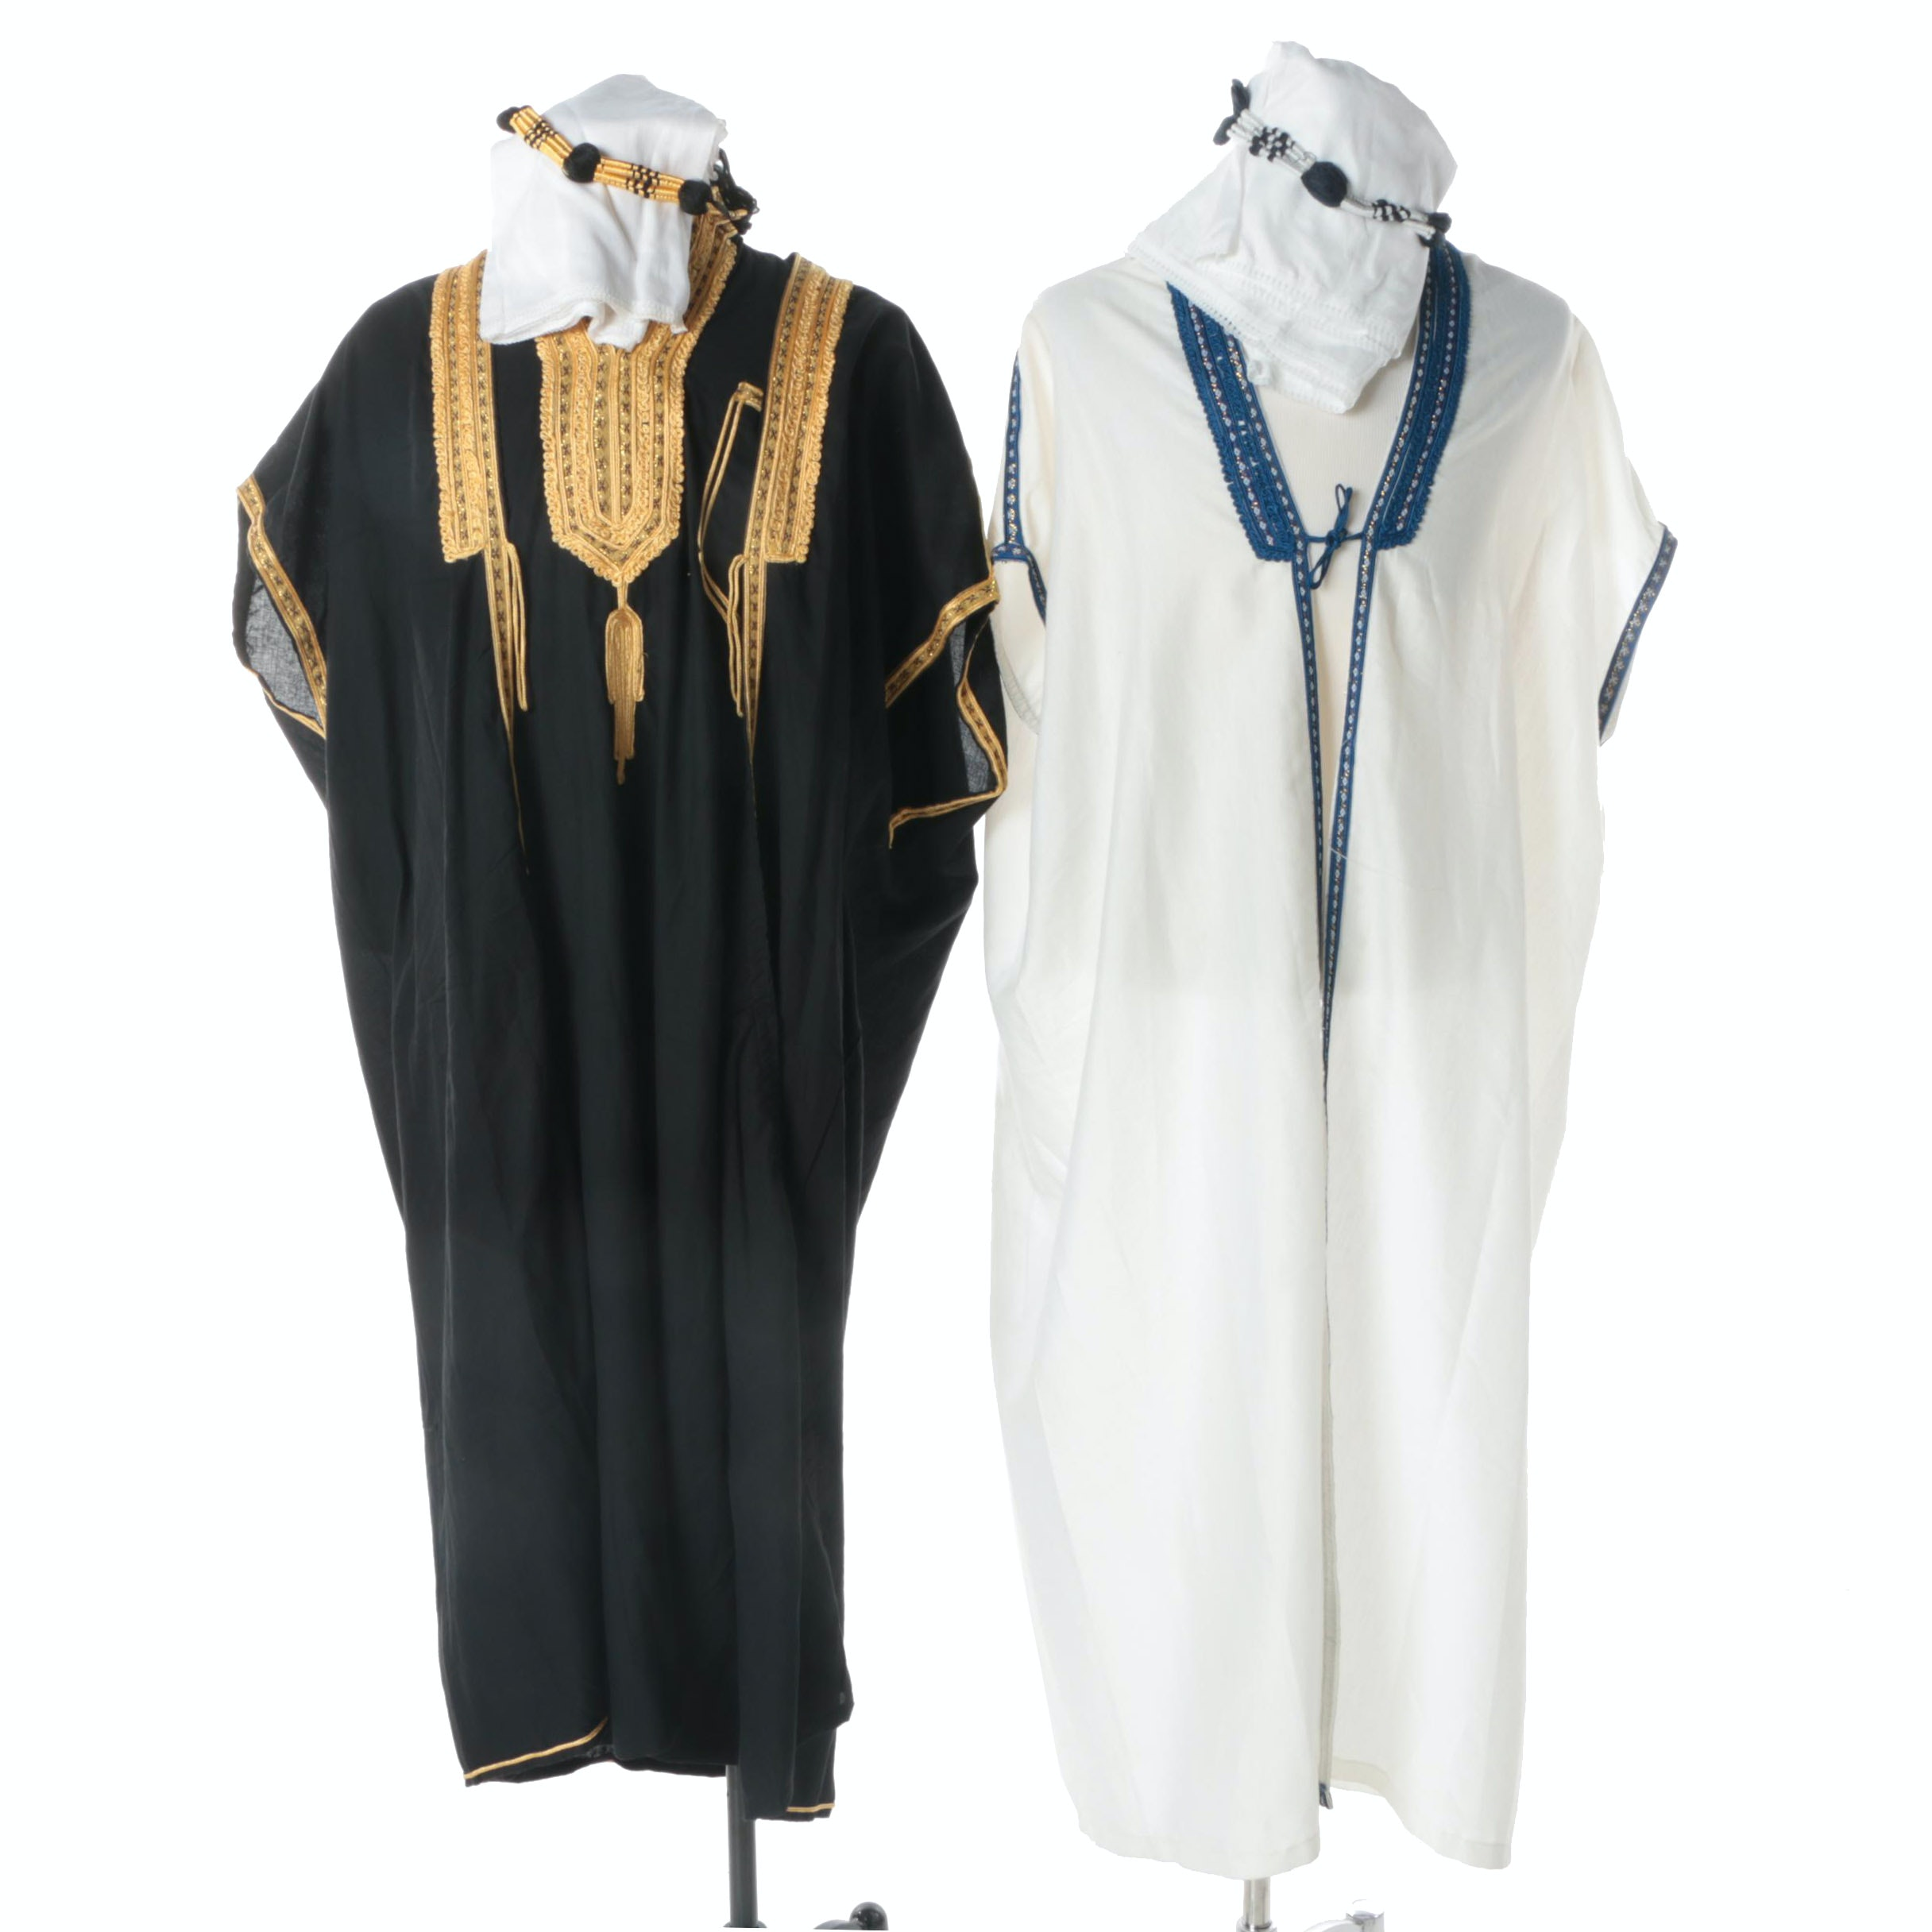 Men's Traditional Thobes, Bishts, Ghutra and Igals